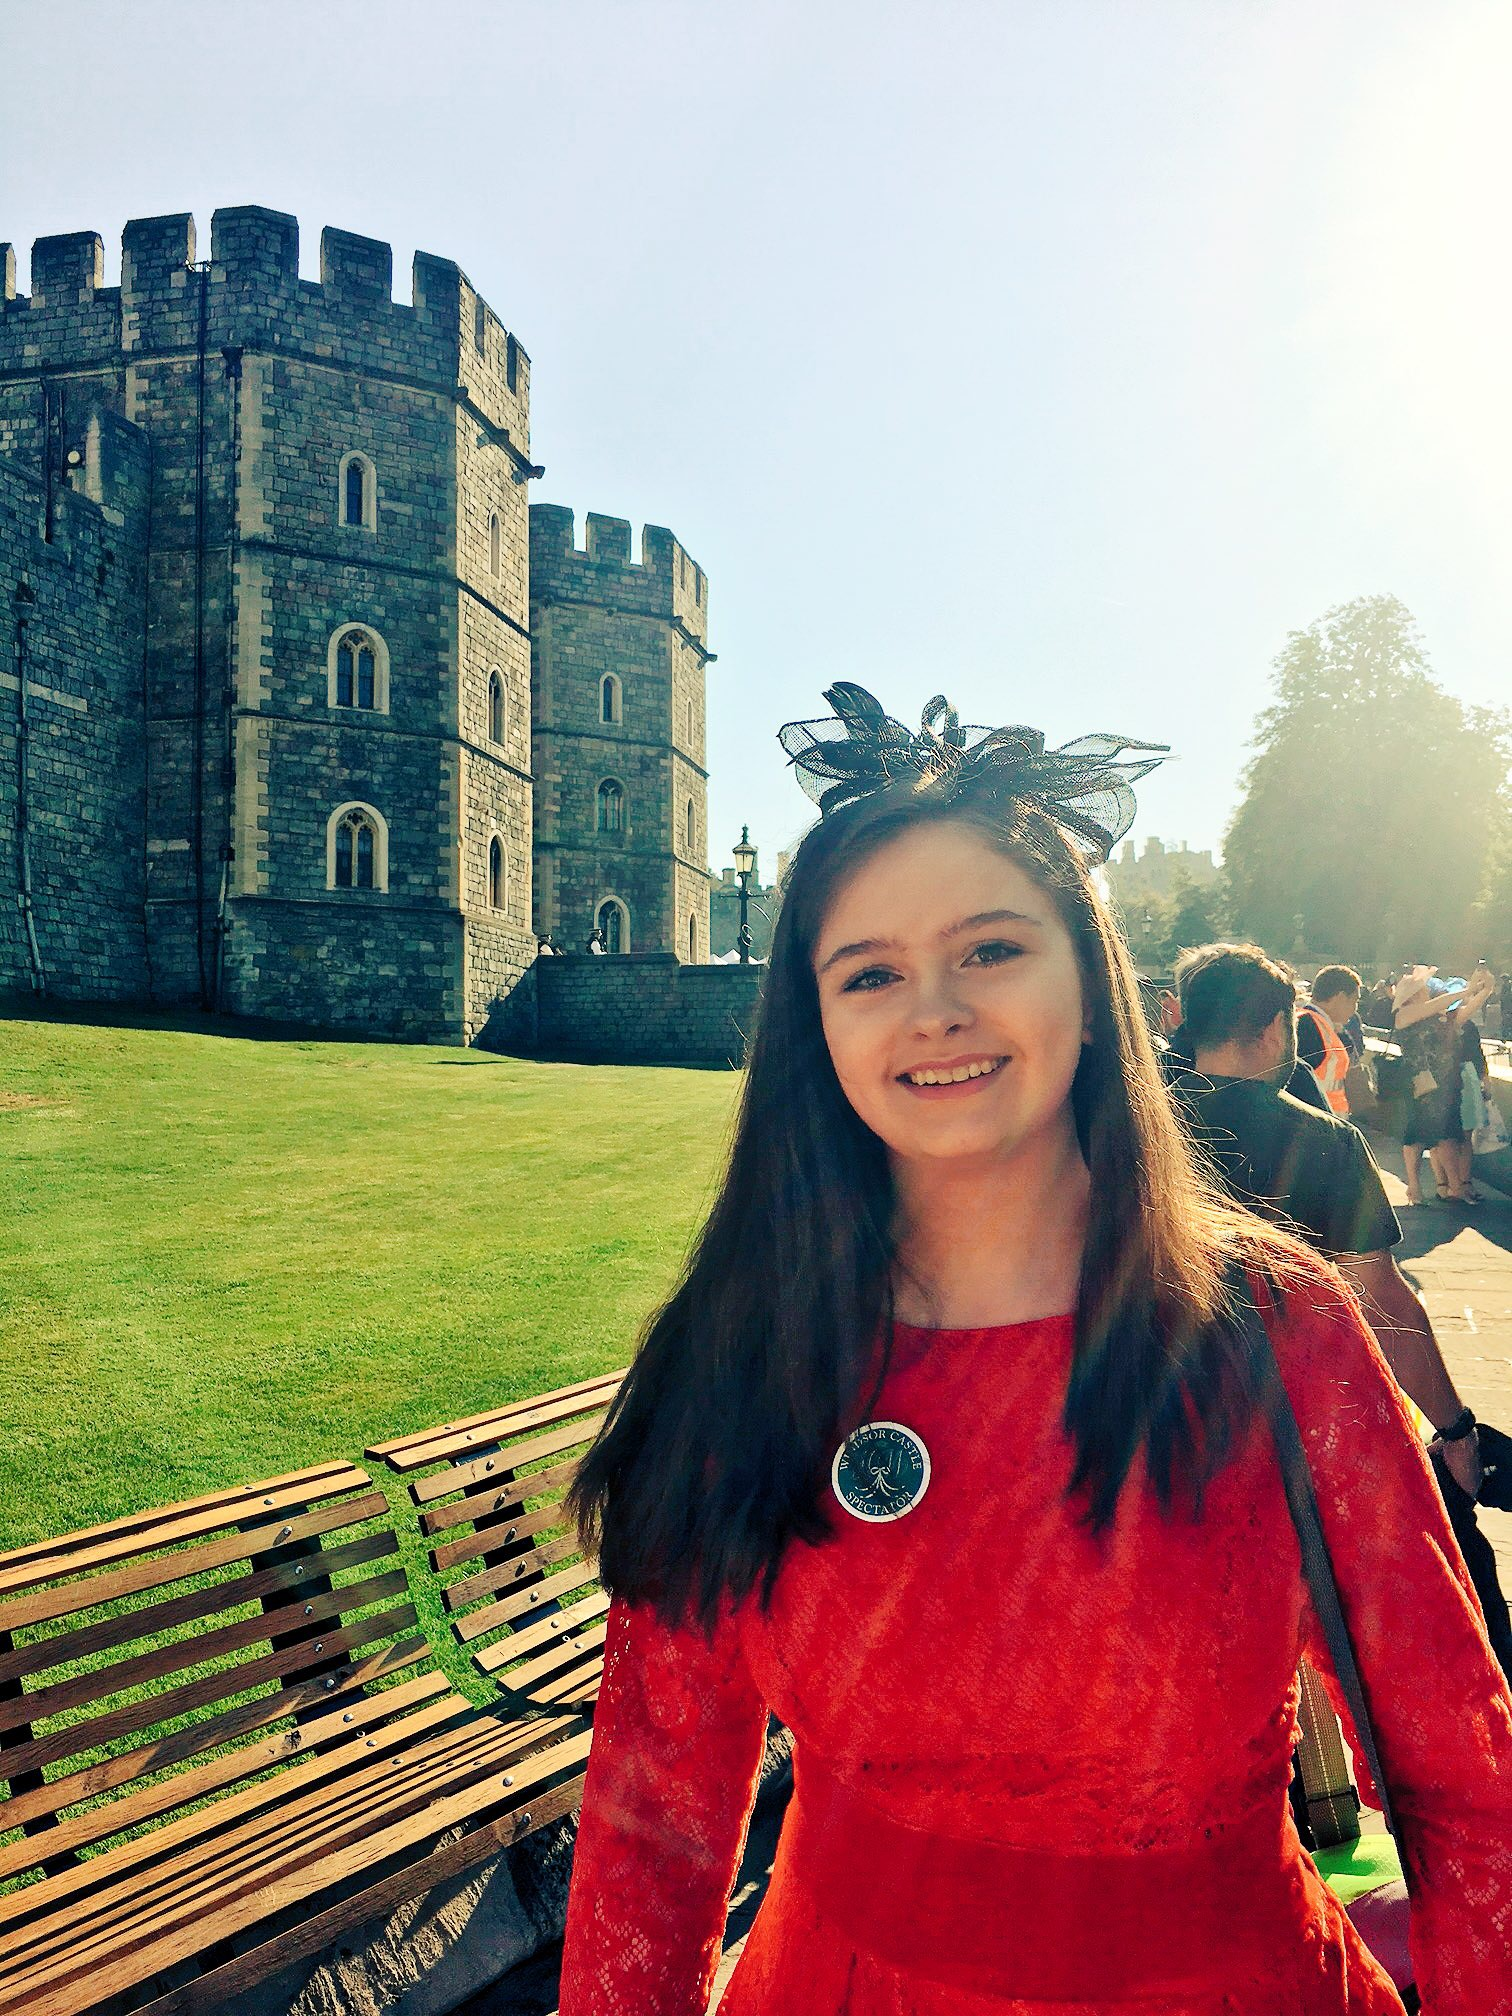 Kerri Fry, Action Cancer's youngest long-term volunteer represented the Belfast Lieutenancy at the Royal Wedding...and had an amazing day!!